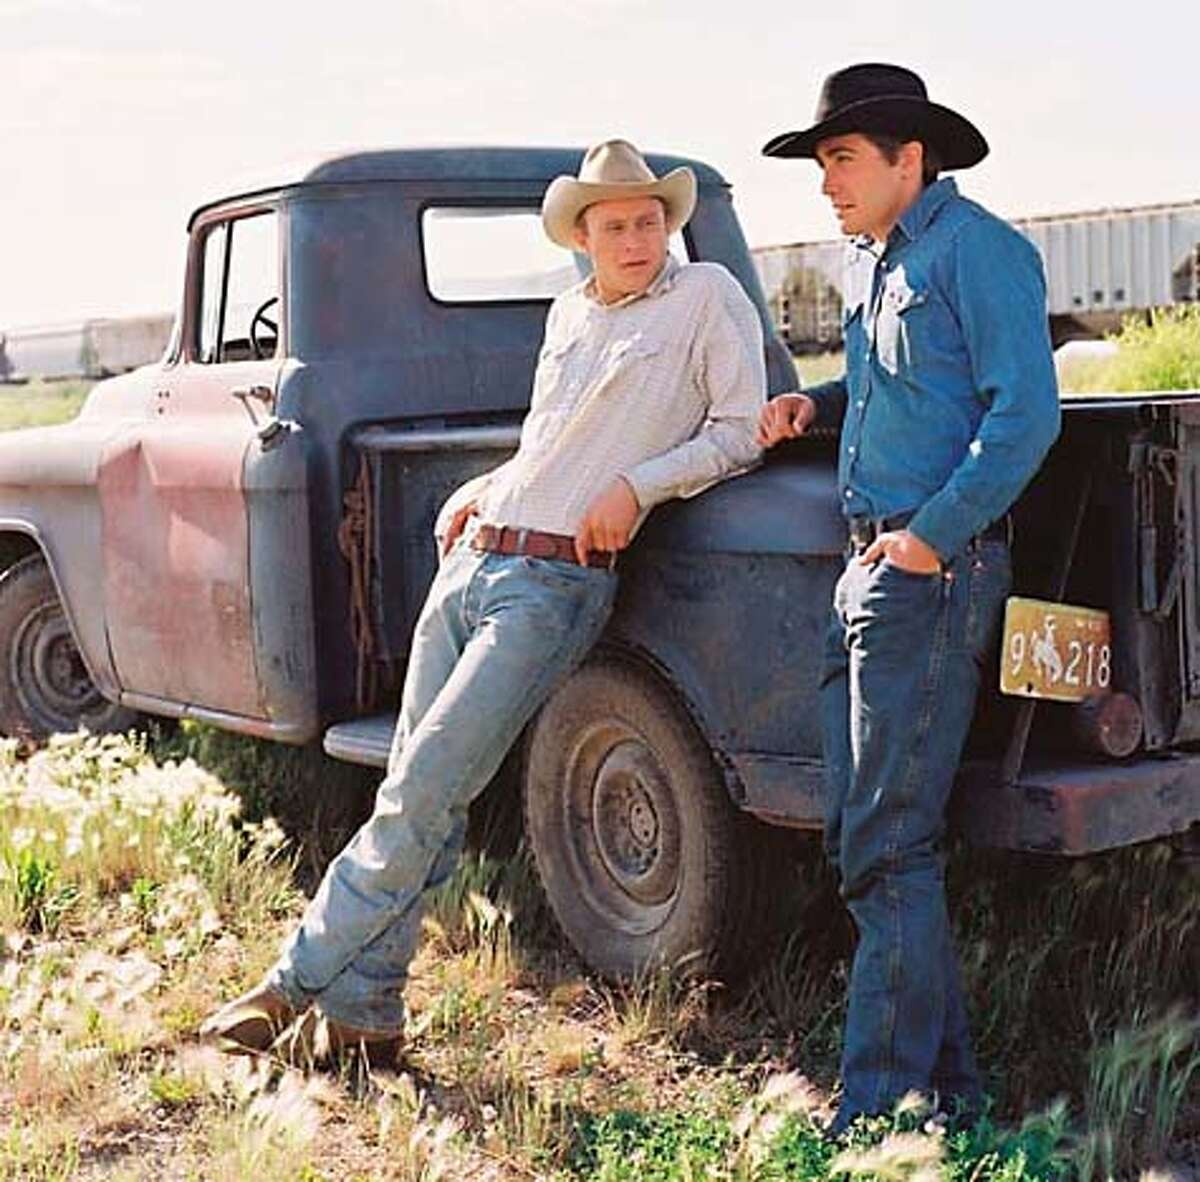 """**FILE**This photo provided by Focus Features, shows actors Heath Ledger, left, and Jake Gyllenhaal, who play two cowboys from very different backgrounds who meet and fall in love, in a scene from """"Brokeback Mountain."""" The film is among a wave of Oscar contenders that marked a year of Hollywood political and social activism. (AP Photo/ Focus Features/ Kimberly French) UNDATED HANDOUT PROVIDED BY FOCUS FEATURES."""